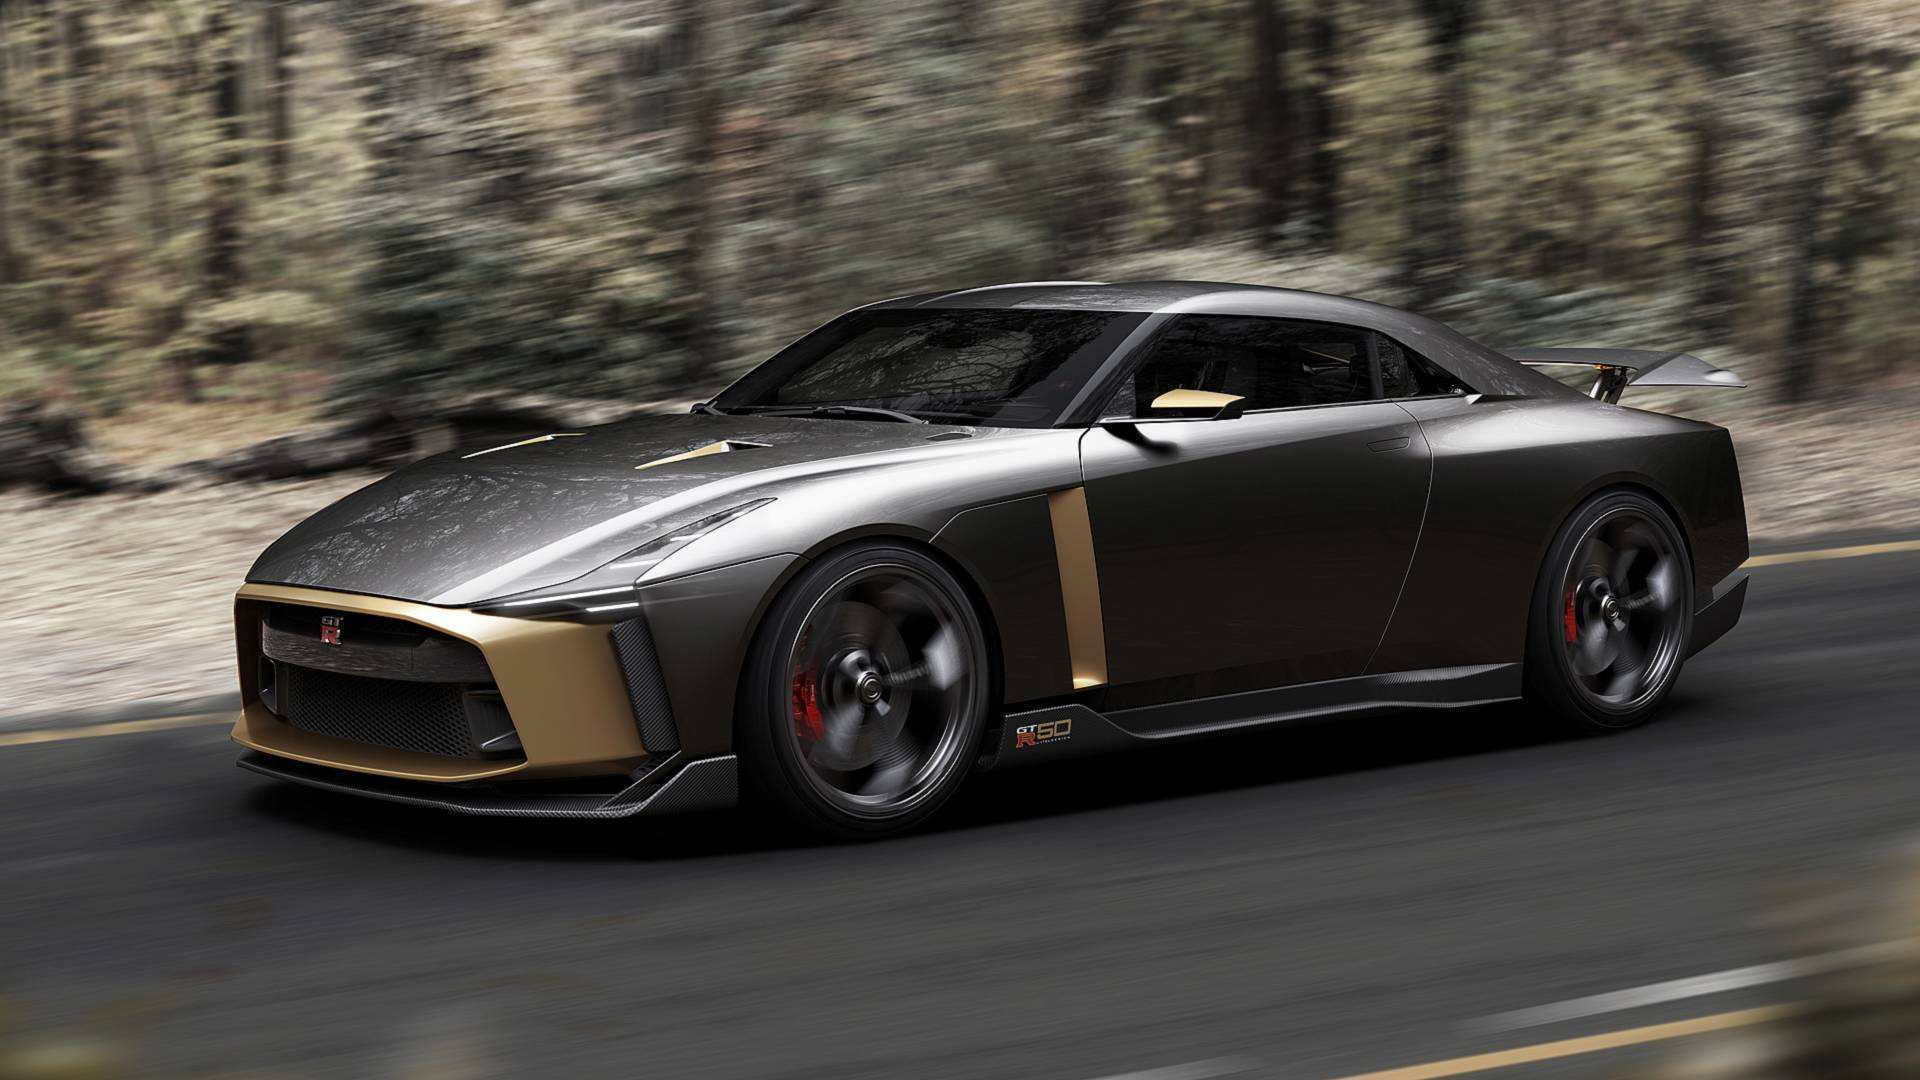 40 Gallery of Nissan 2019 Gtr Research New for Nissan 2019 Gtr